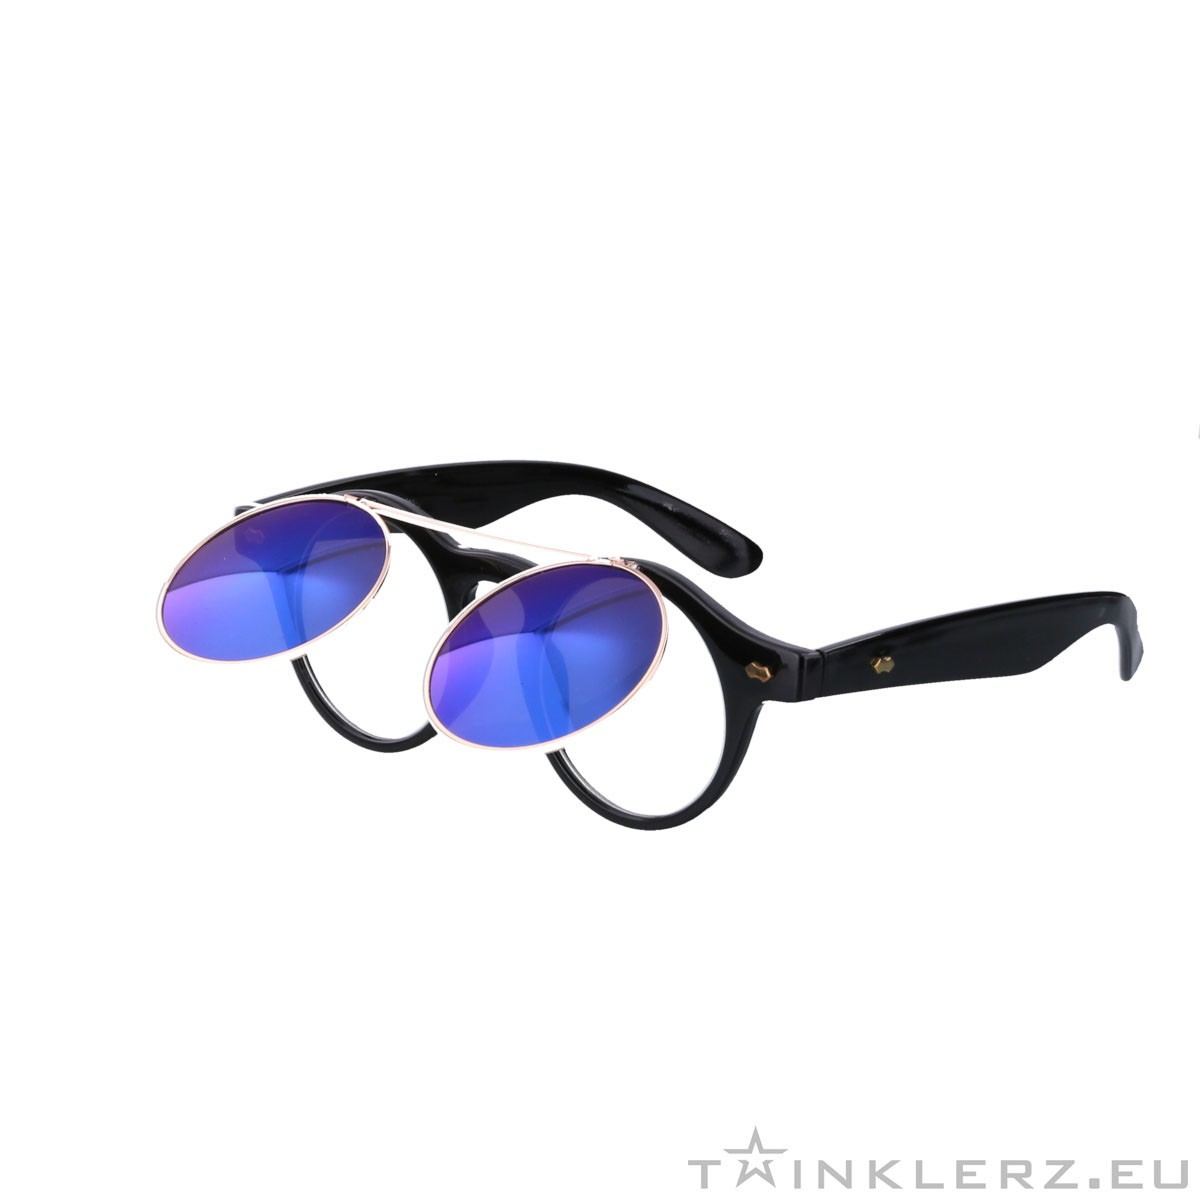 Black retro sunglasses - flip and blue mirror glass